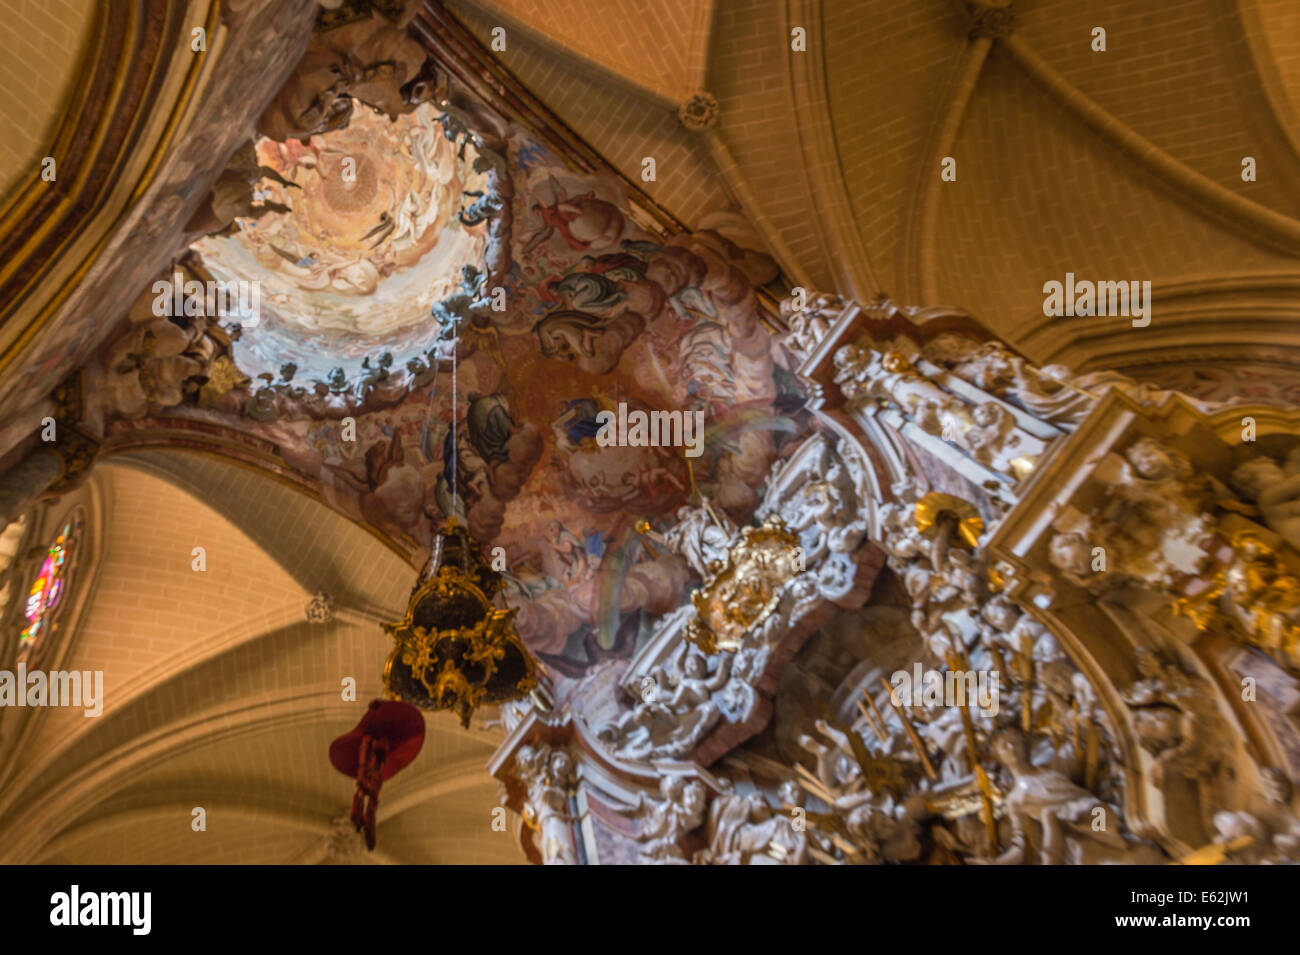 The Sacristy in St Mary's Cathedral Toledo - Stock Image